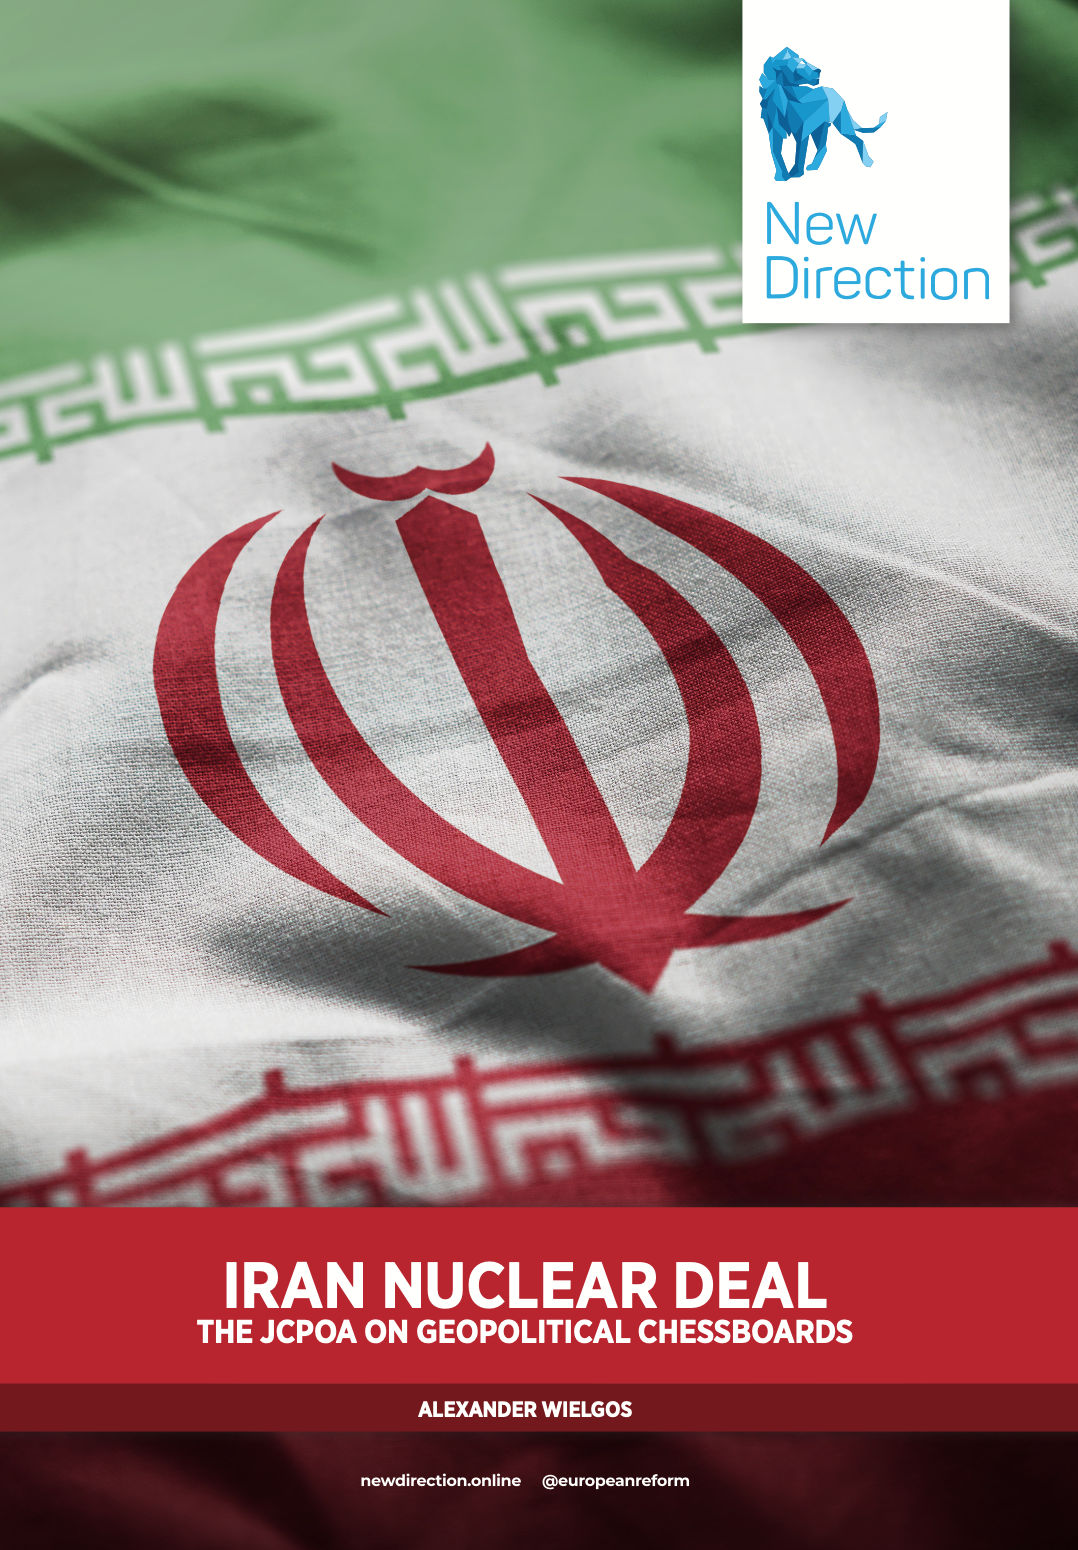 IRAN NUCLEAR DEAL THE JCPOA ON GEOPOLITICAL CHESSBOARDS